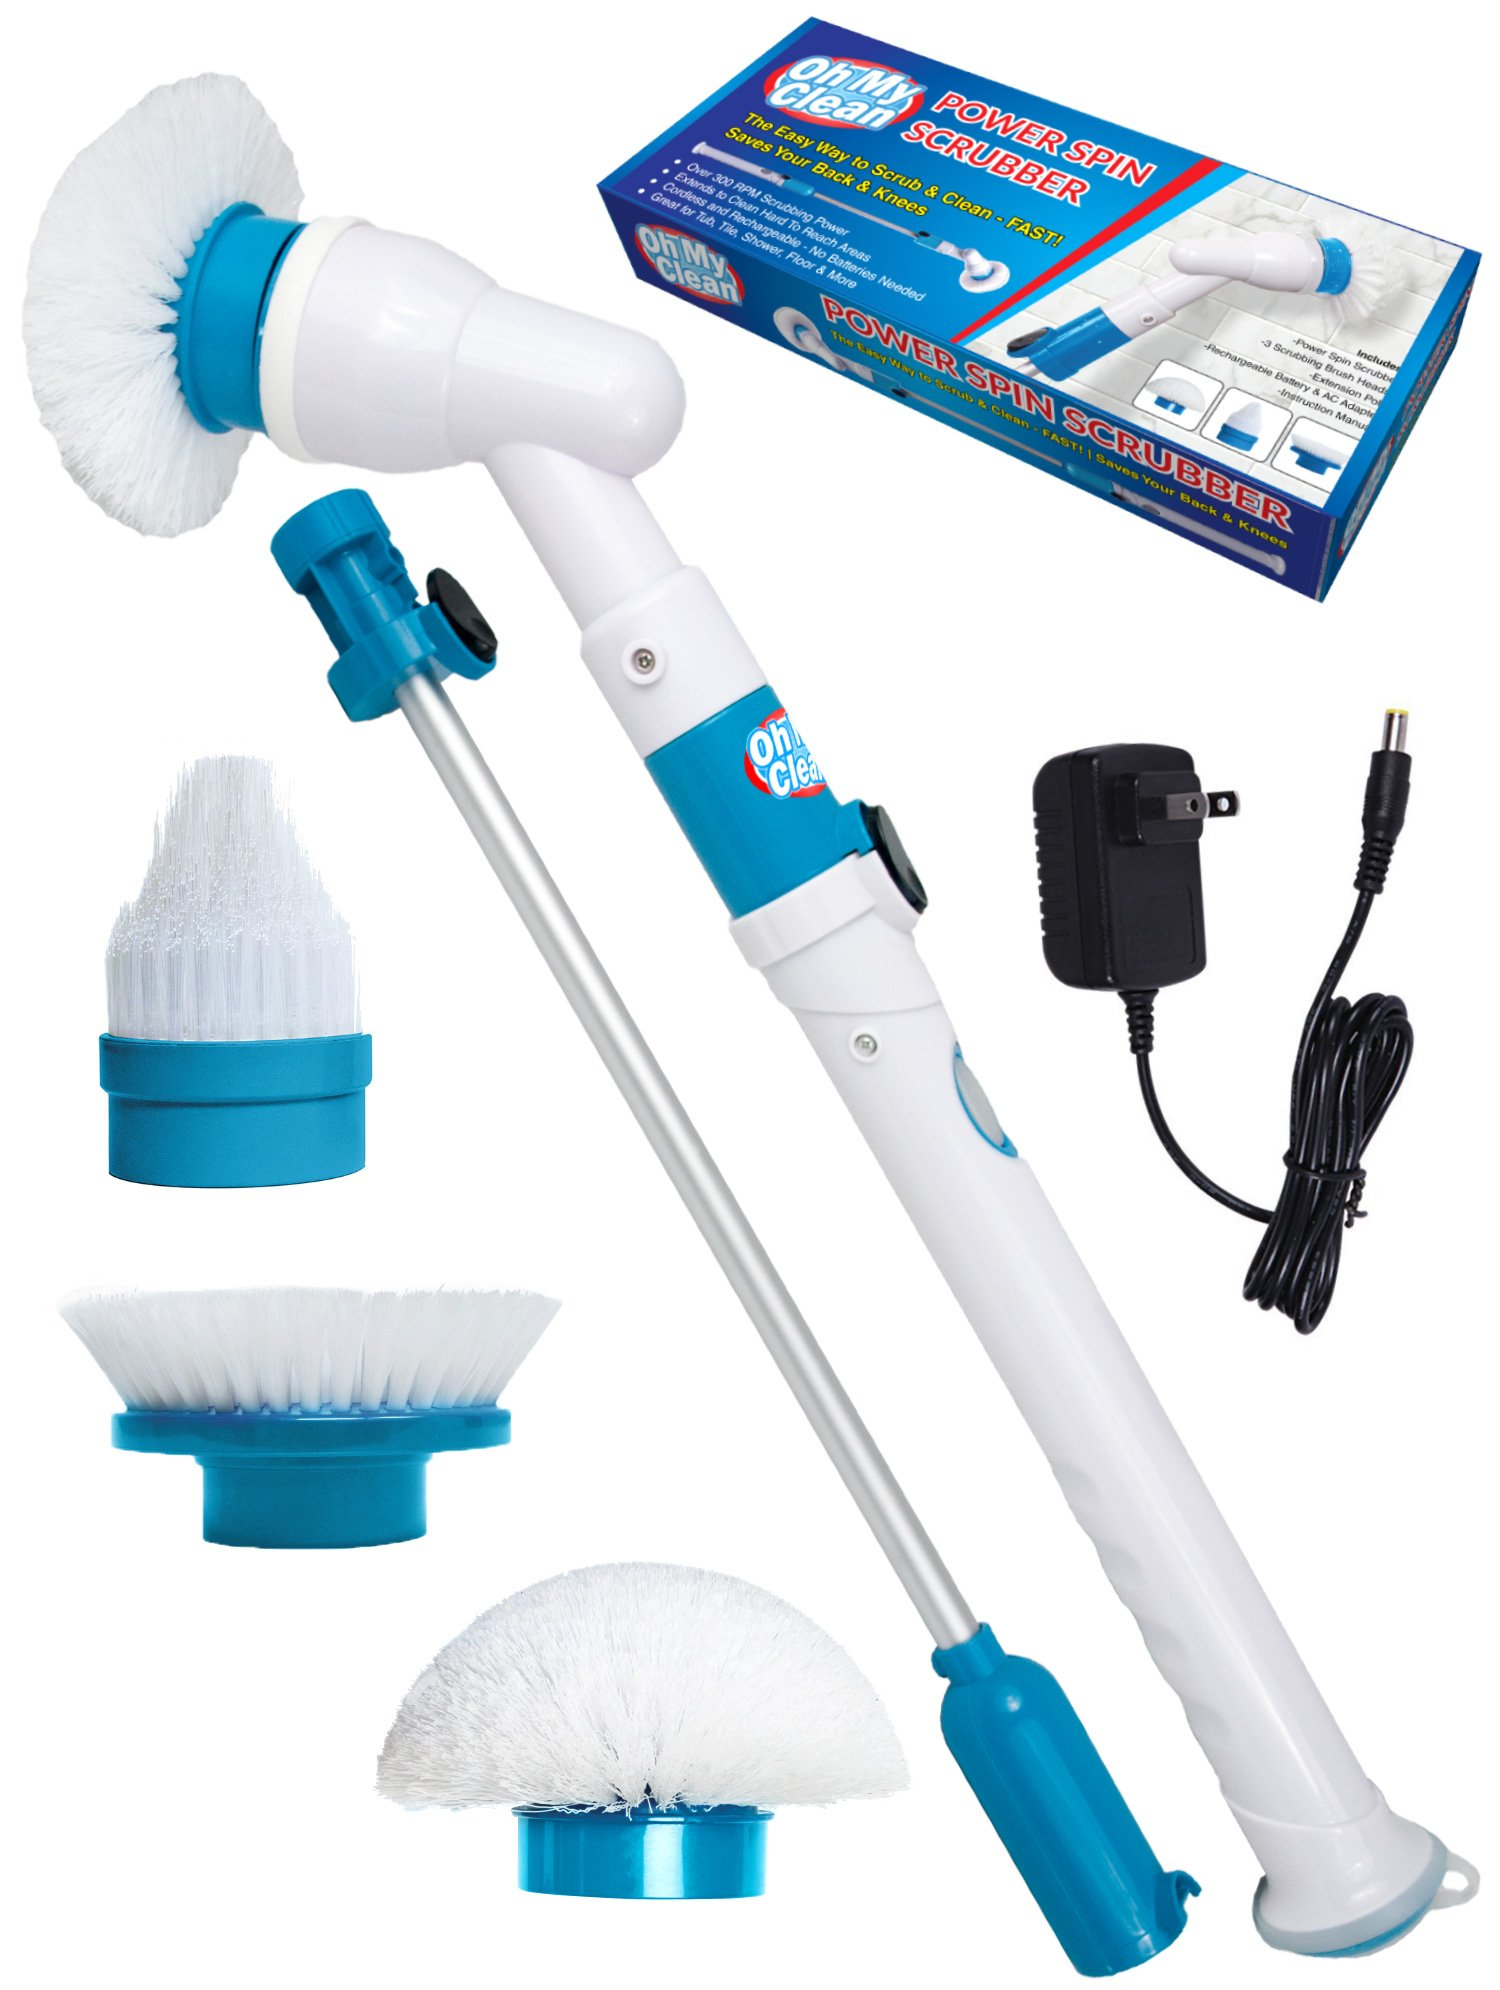 Best spin brush cleaners for bathroom | Amazon.com